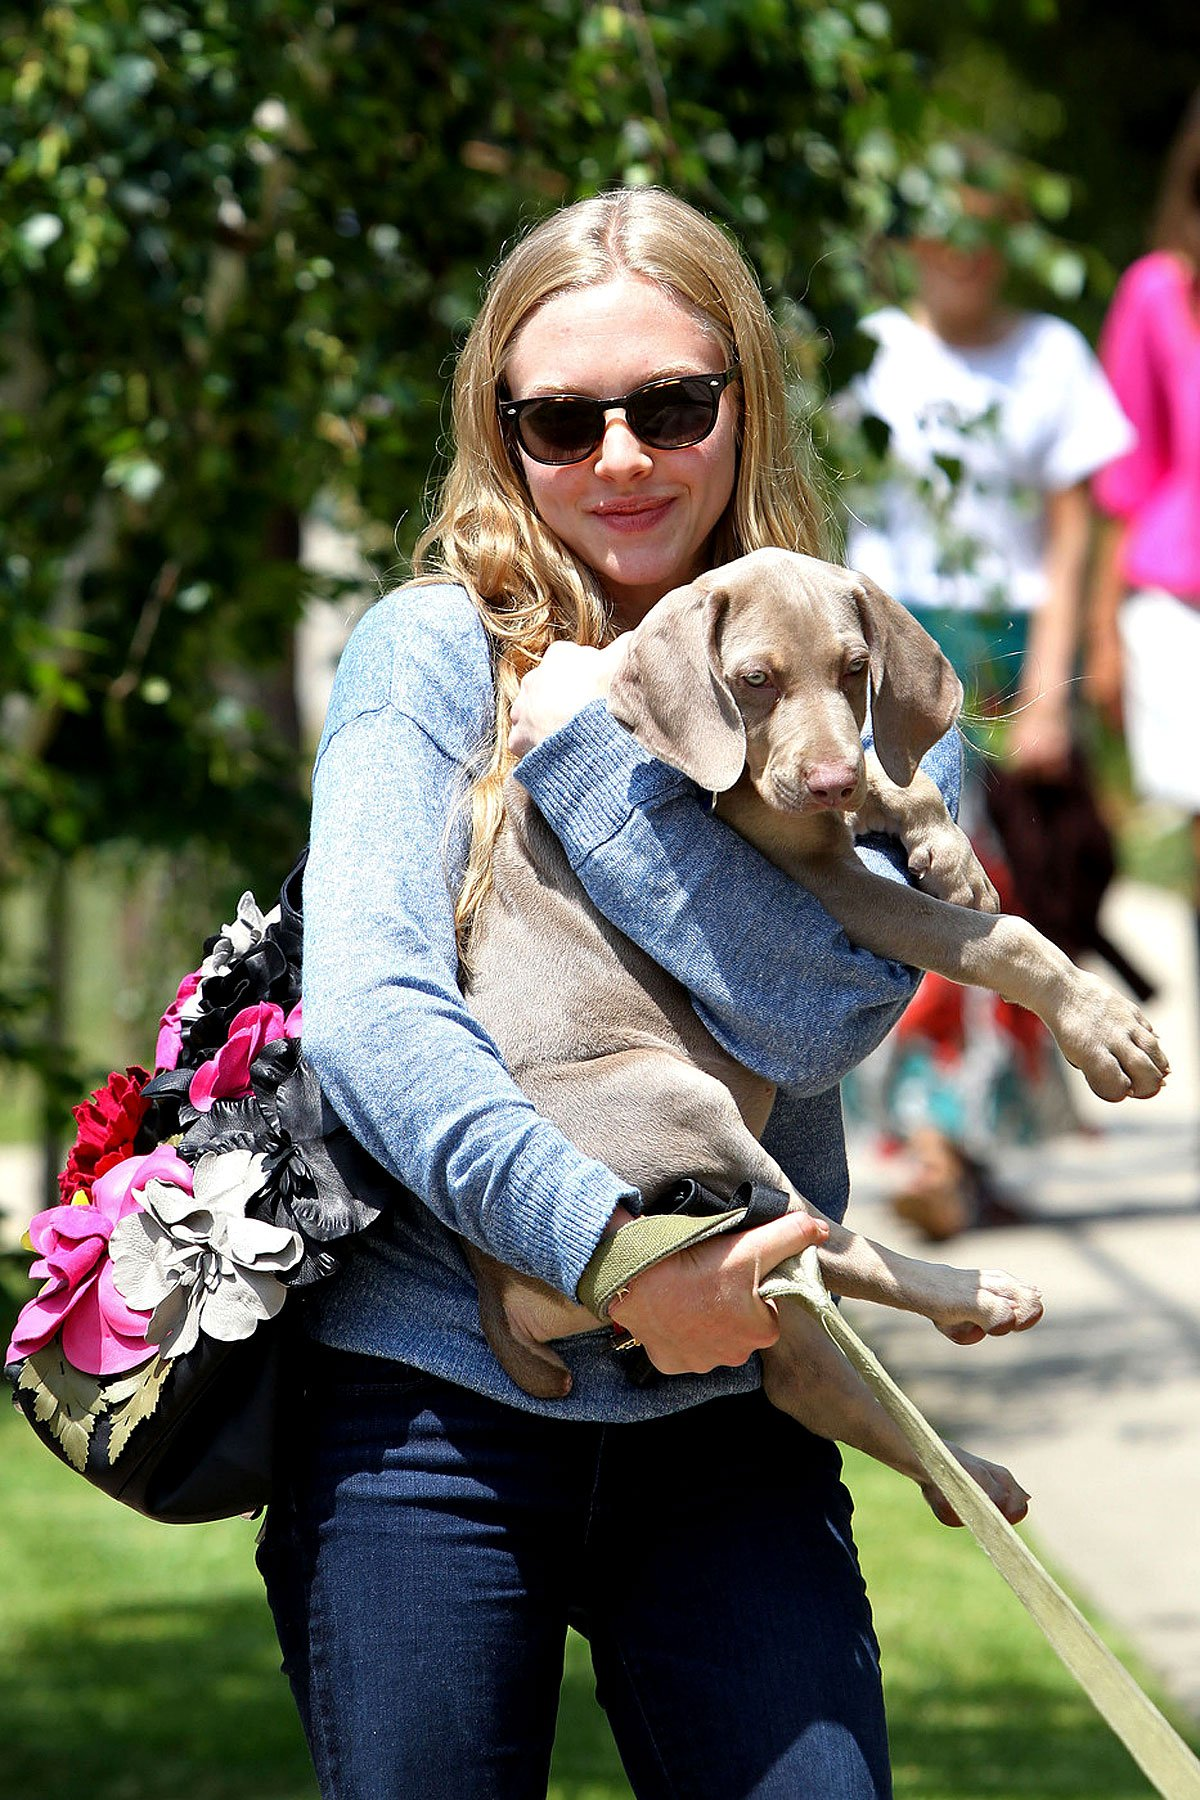 Amanda Seyfried Gets Over Ex With Some Puppy Love (PHOTOS)